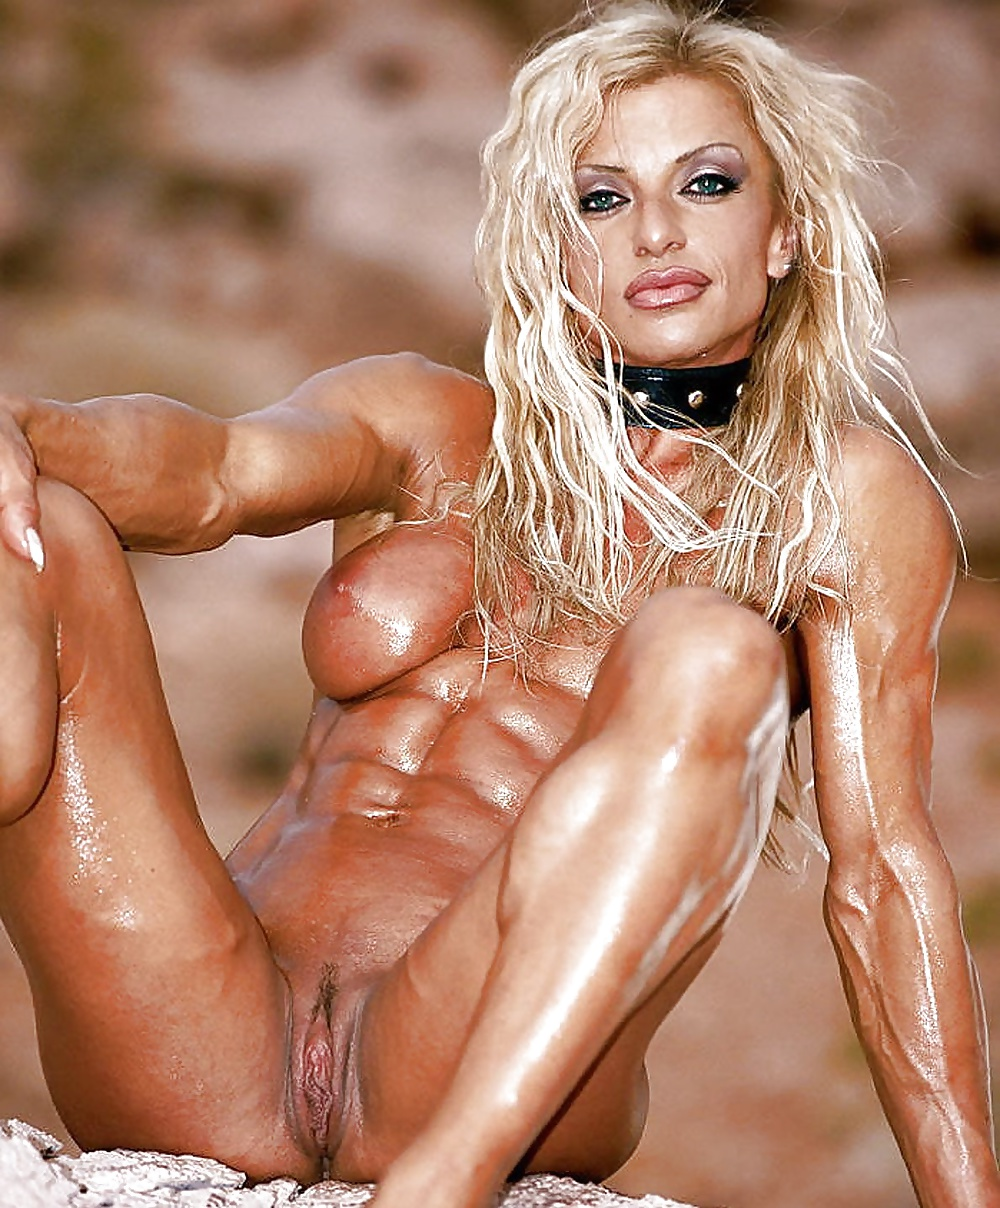 Hot naked muscular women being fucked photos  adult movies